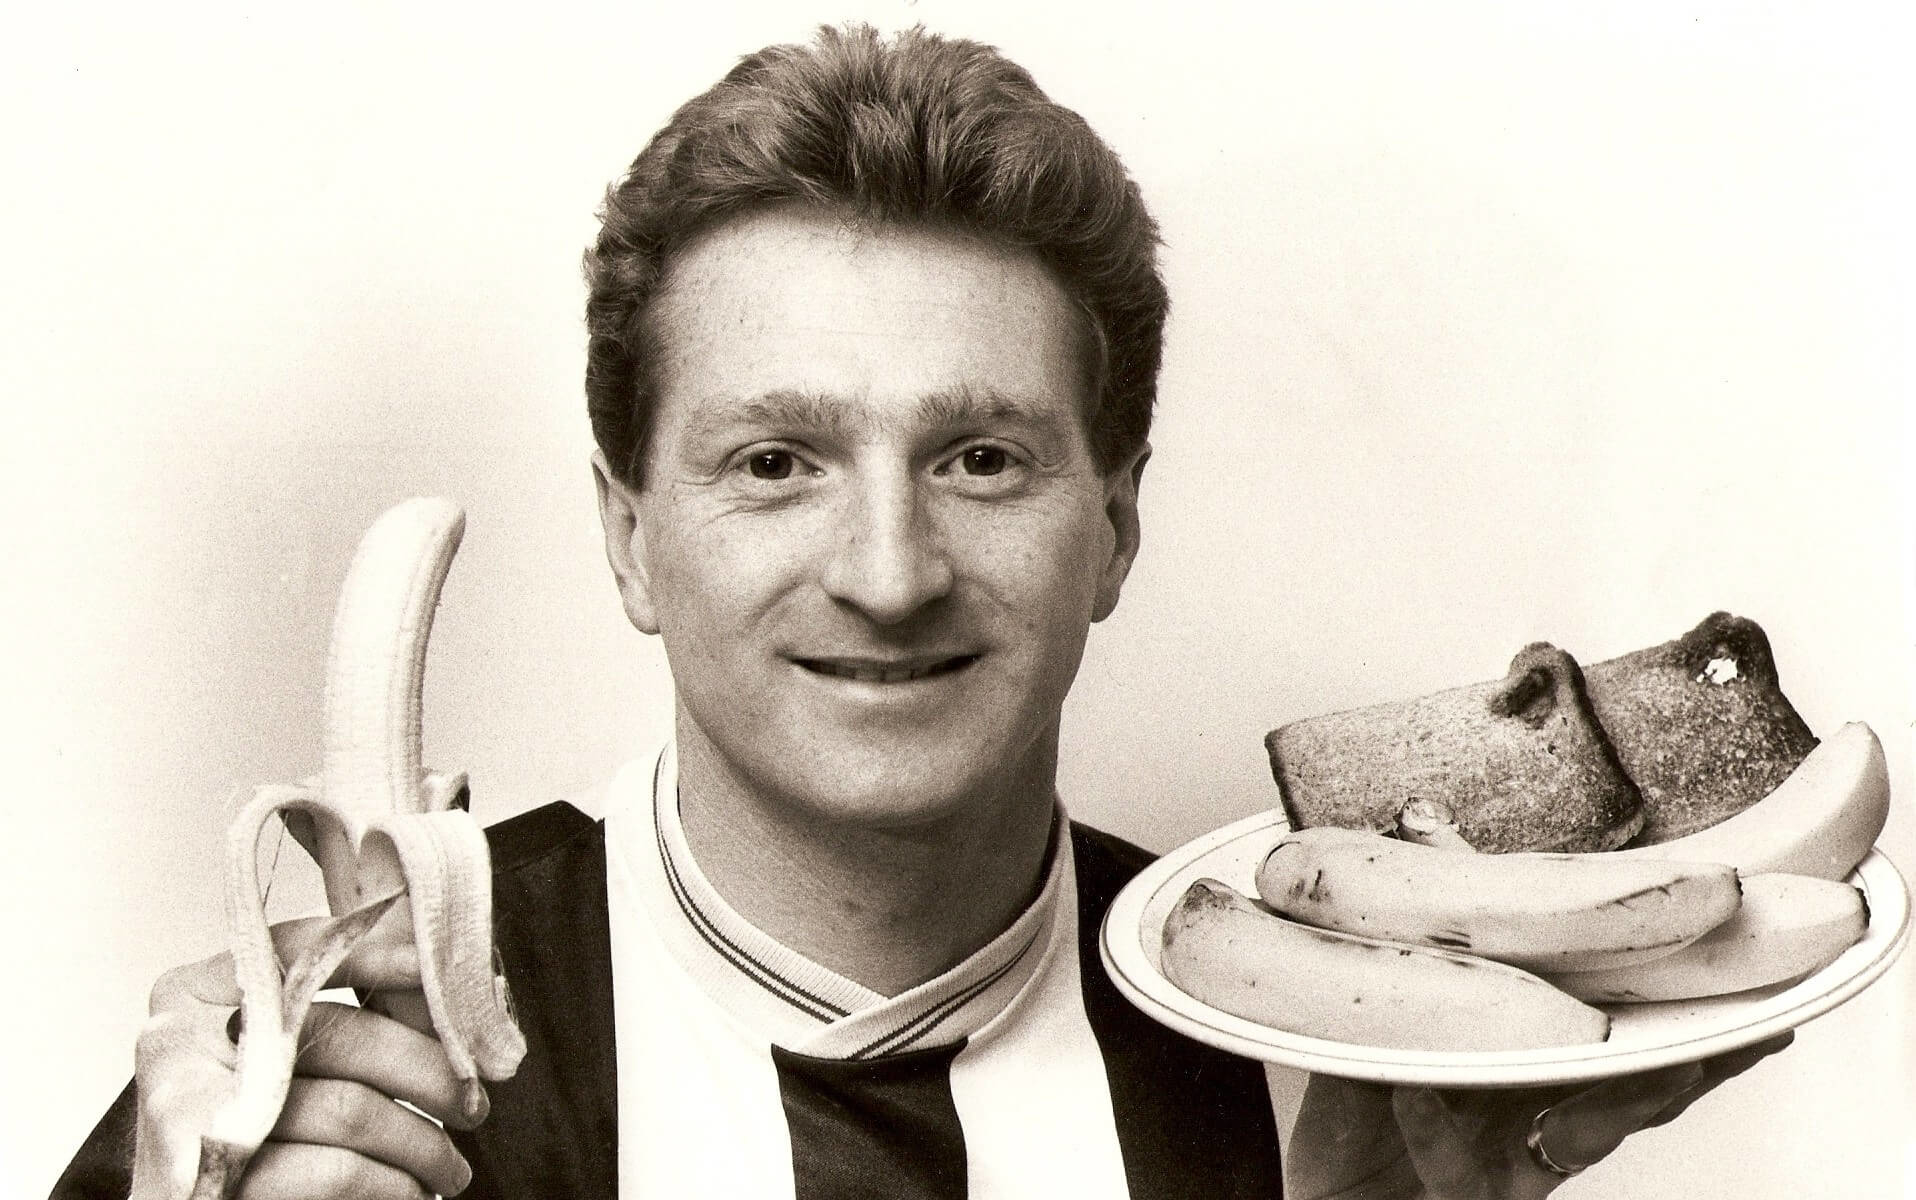 Neil Robinson with a banana in one hand and a plate in the other